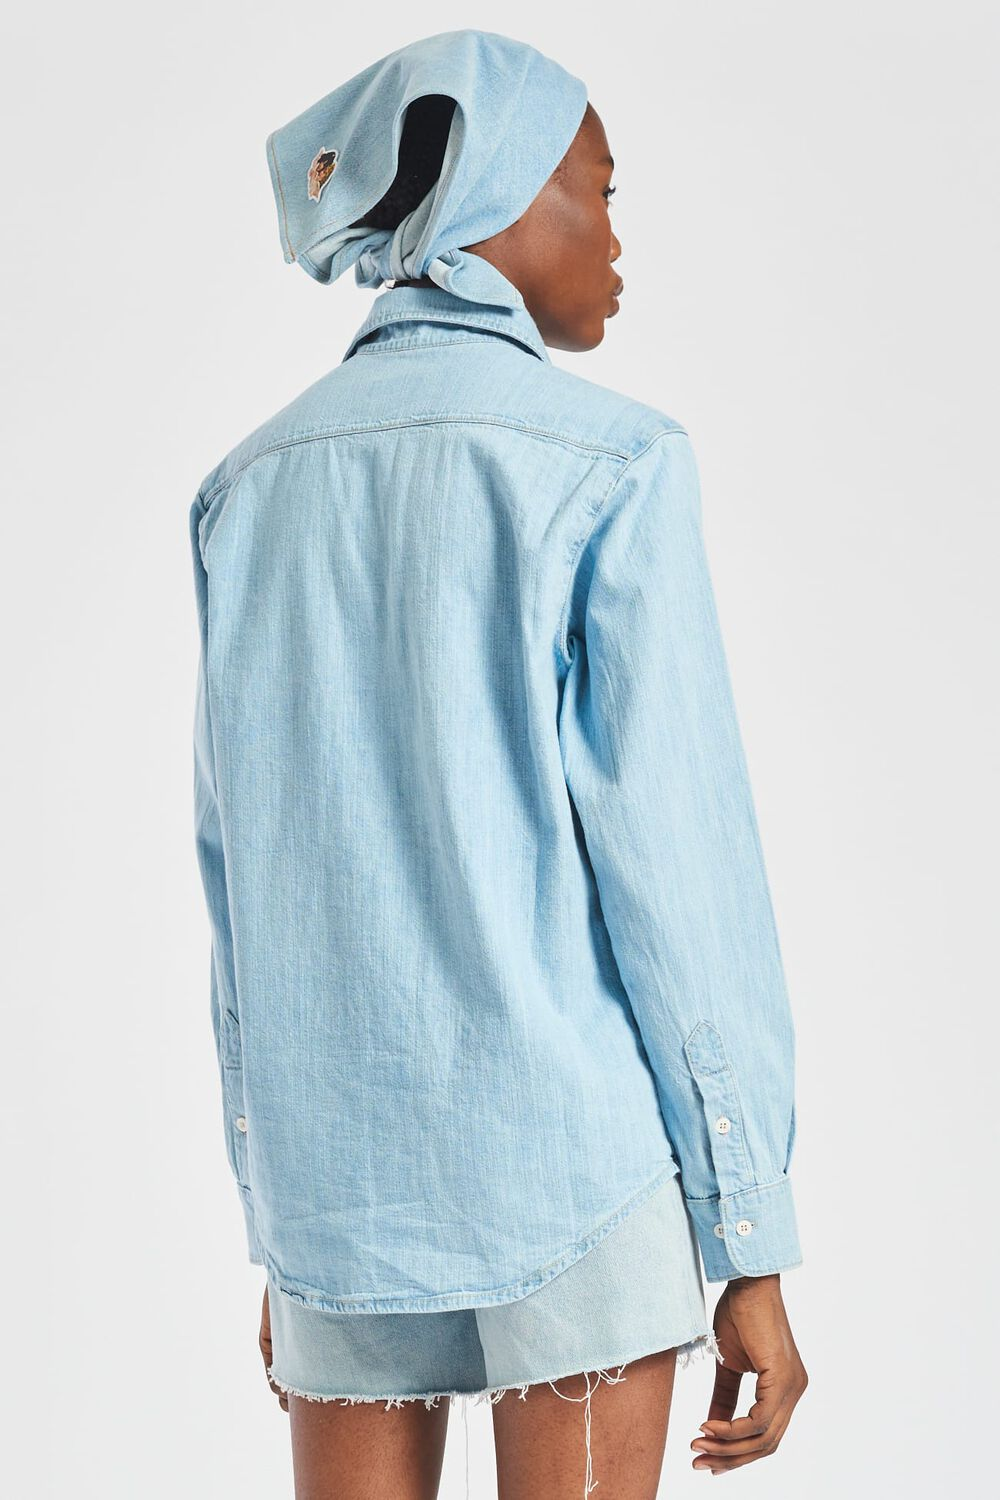 Icon Angels Denim Shirt Blue